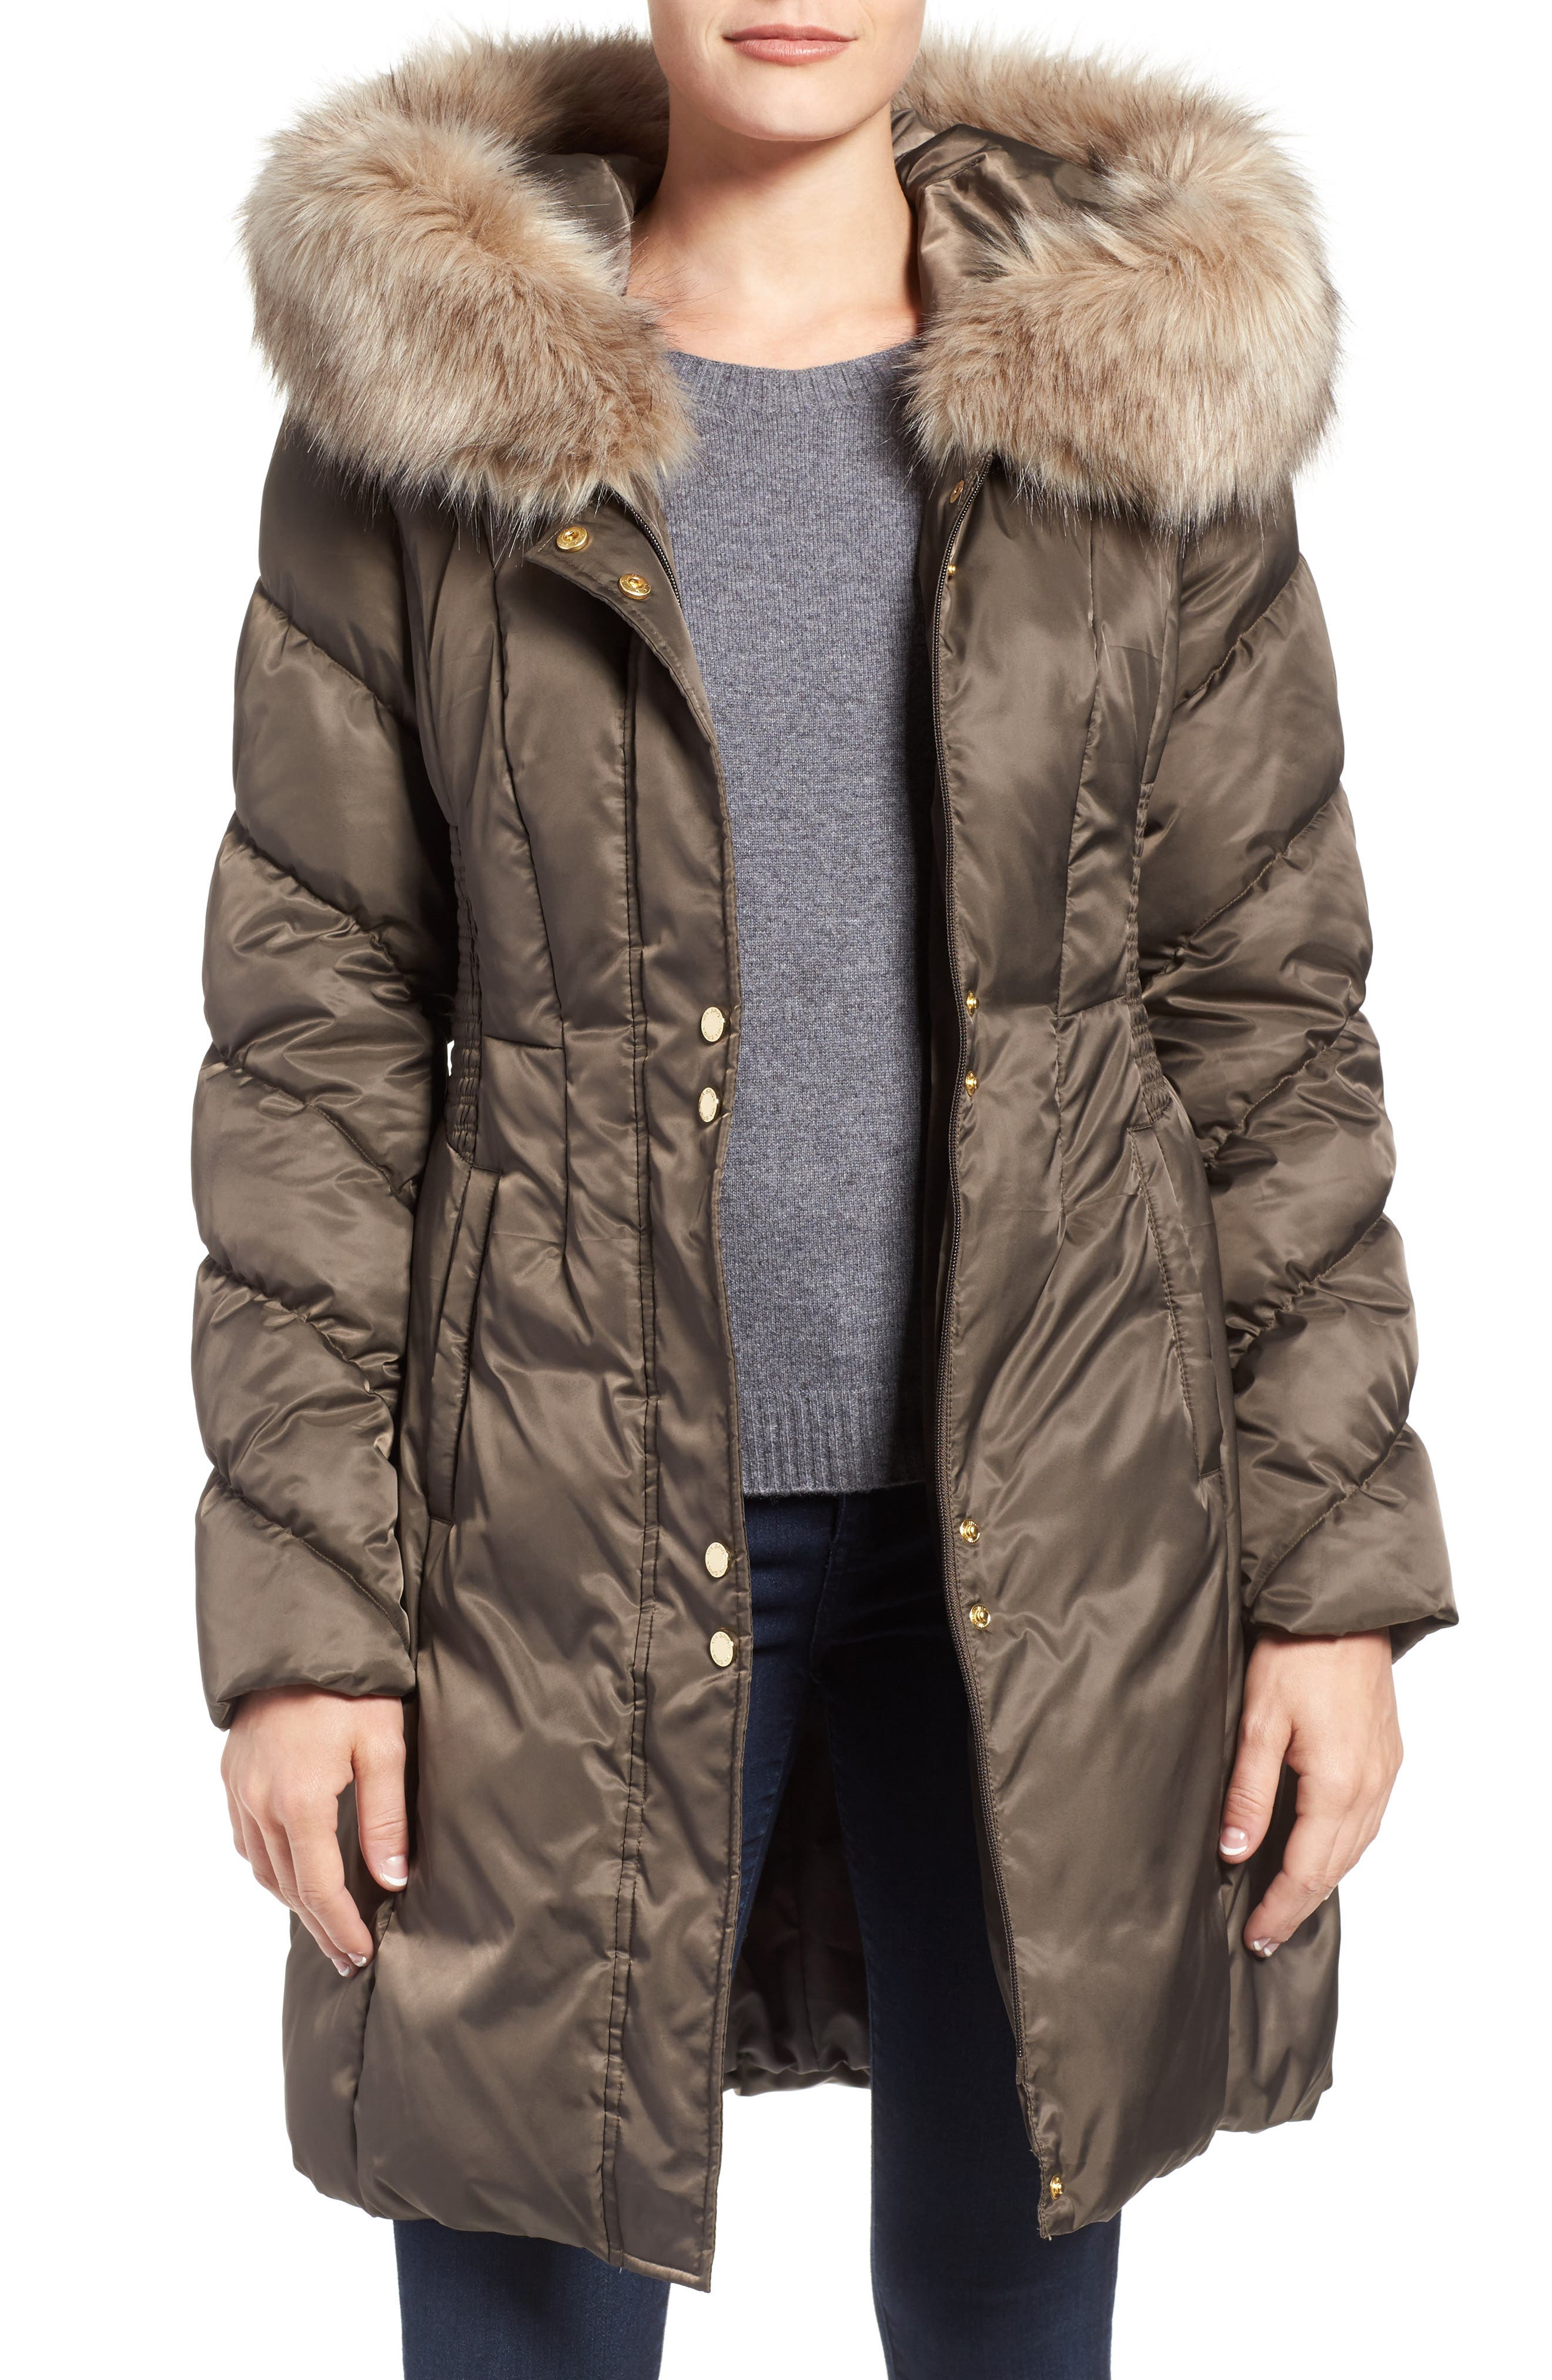 Main Image - Via Spiga Water Repellent Quilted Puffer Coat with Faux Fur Trim